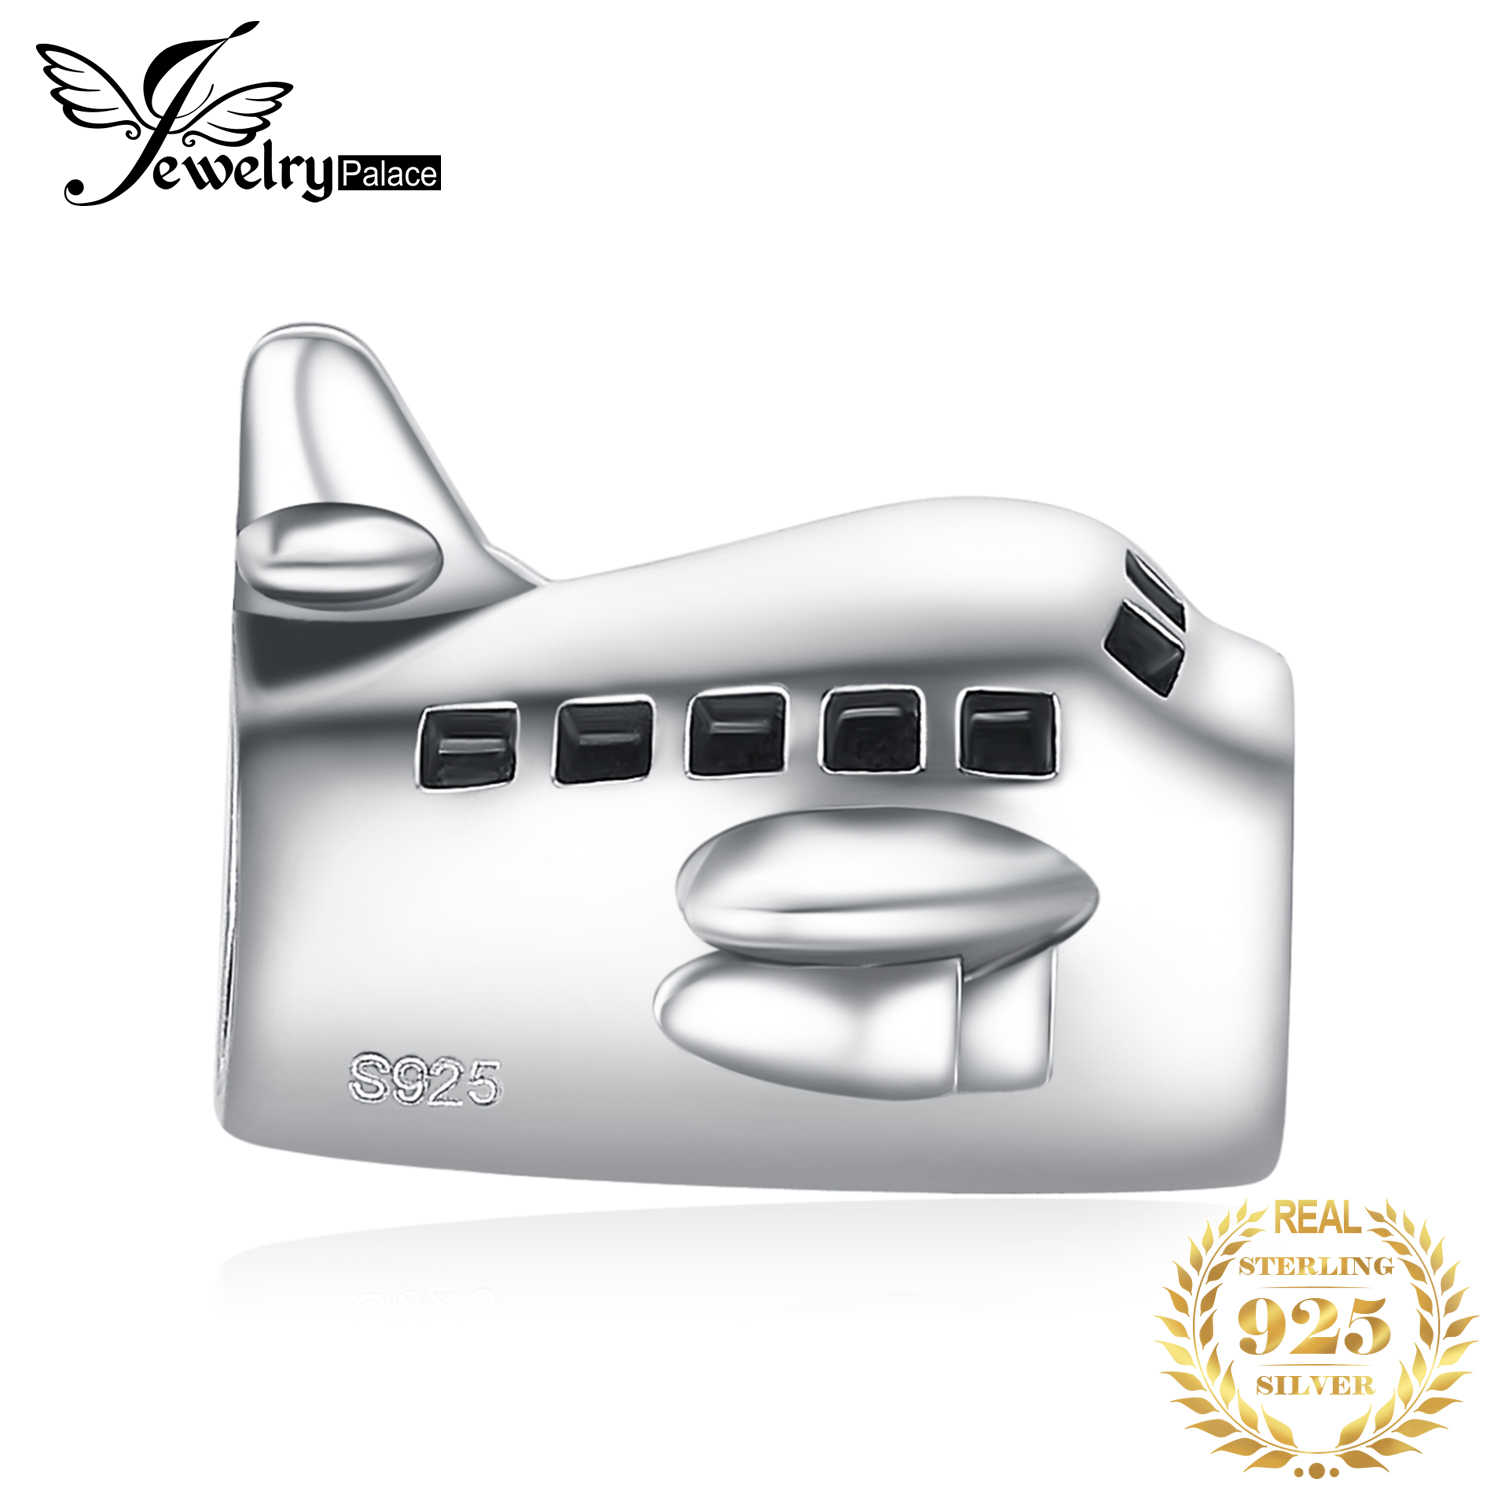 JewelryPalace Airplane 925 Sterling Silver Beads Charms Silver 925 Original For Bracelet Silver 925 original Bead Jewelry Making